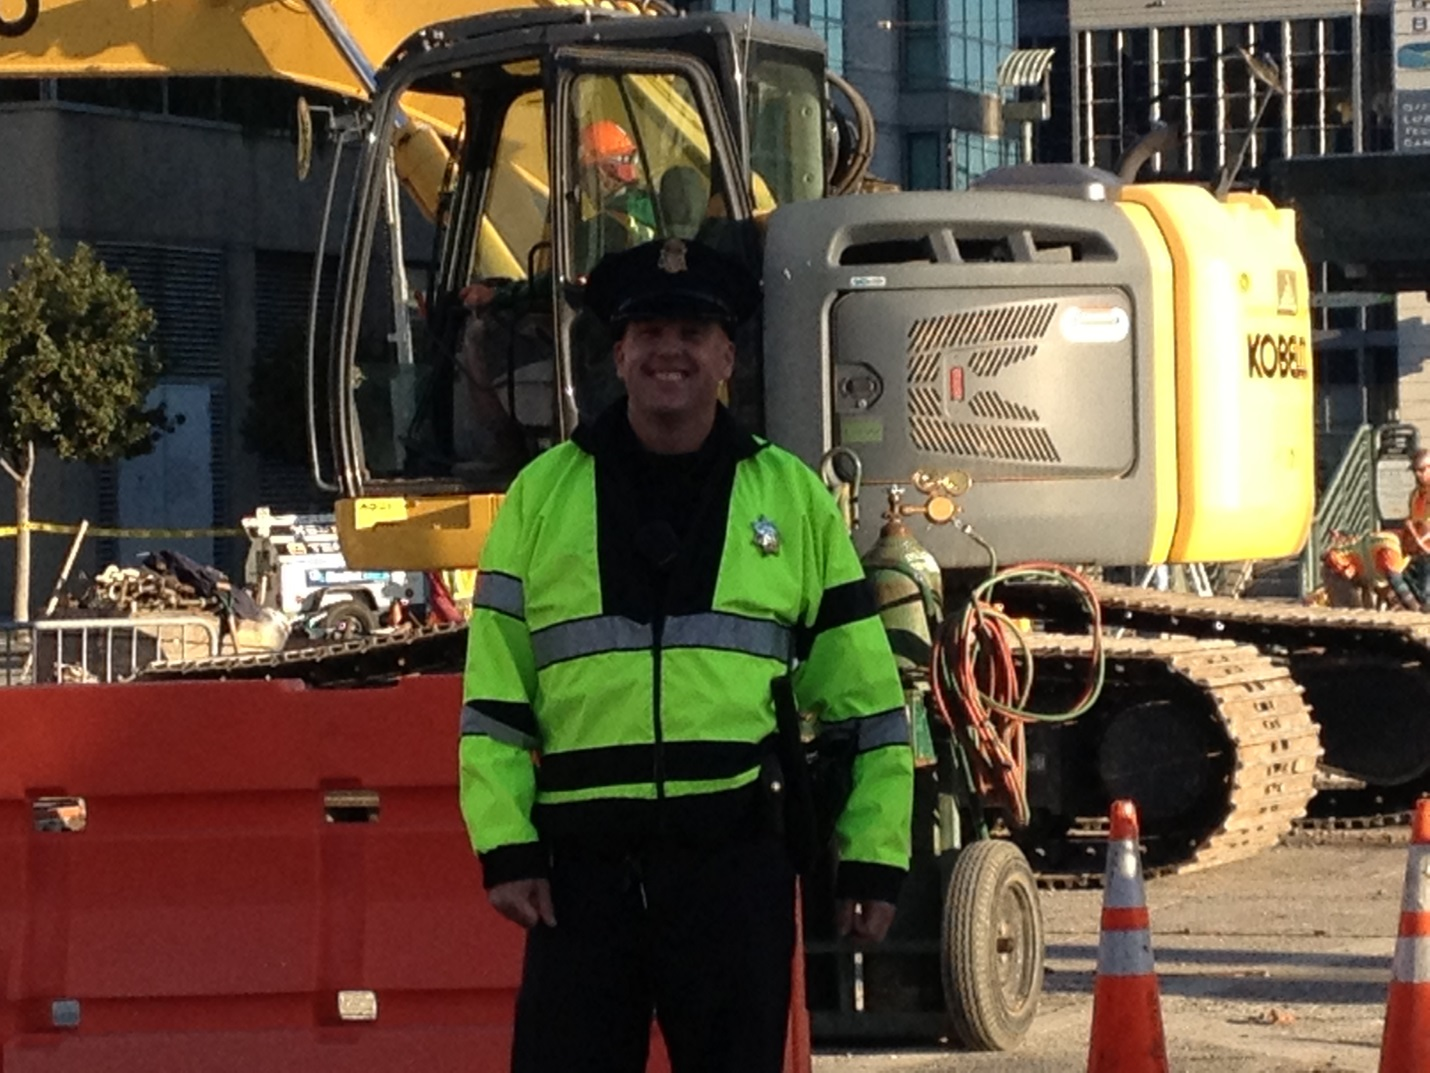 A police officer wearing a reflective safety jacket stands in front of construction equipment.